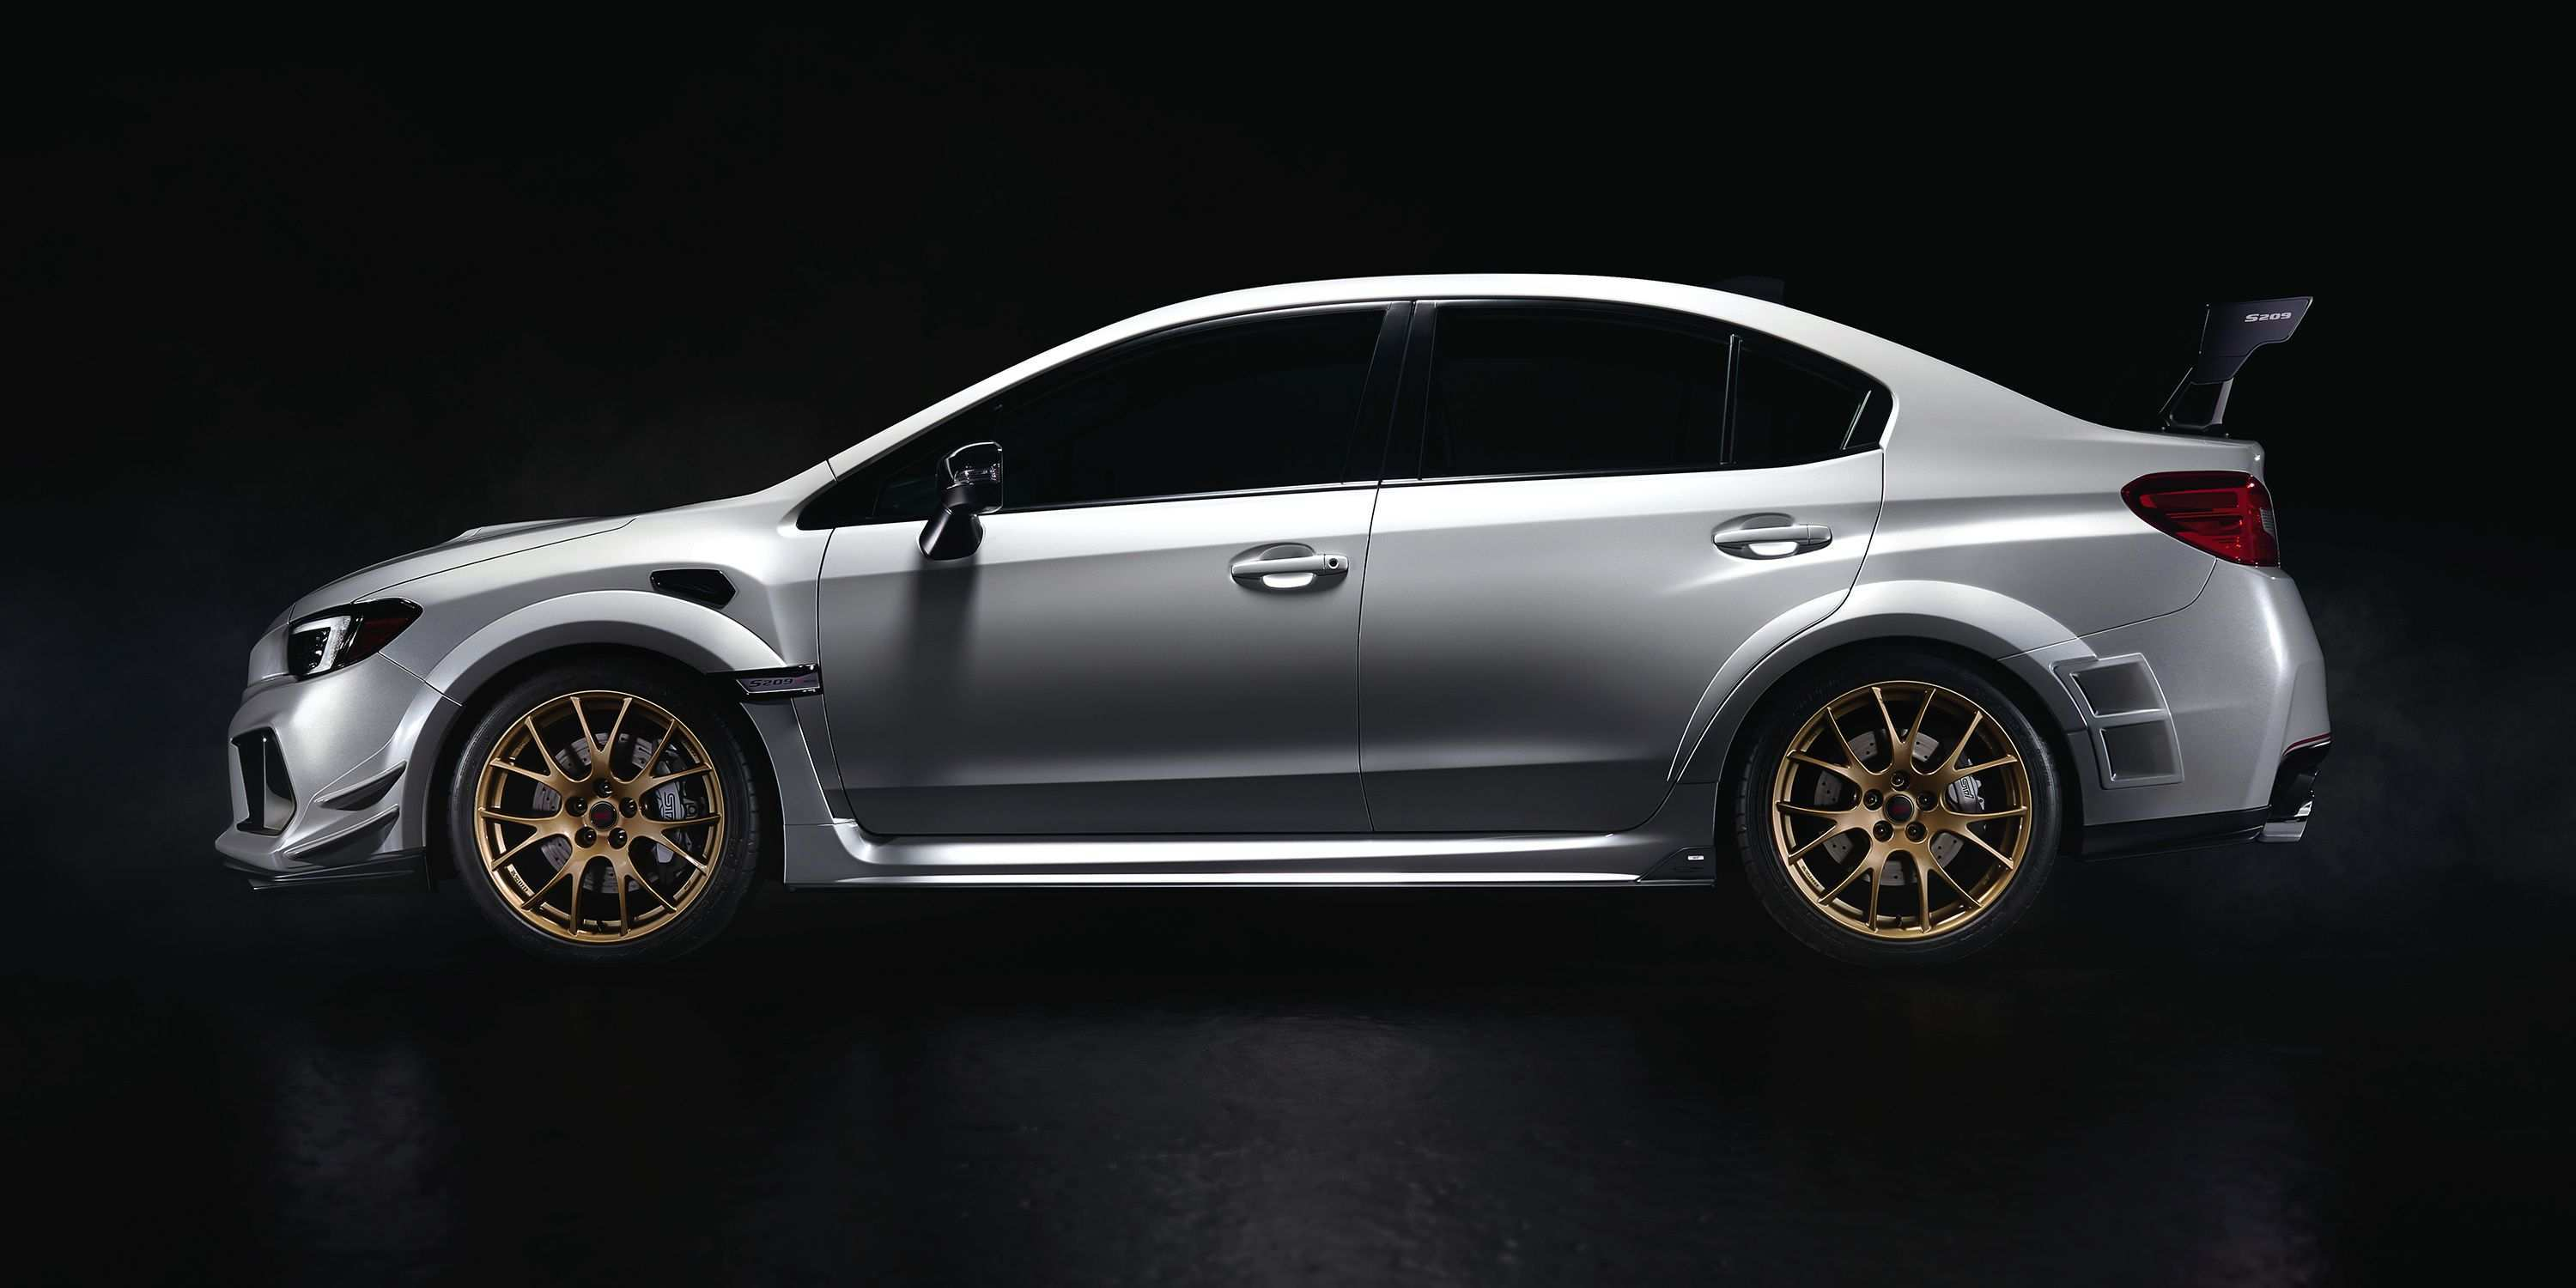 14 All New Subaru Sti Wrx 2020 Prices for Subaru Sti Wrx 2020